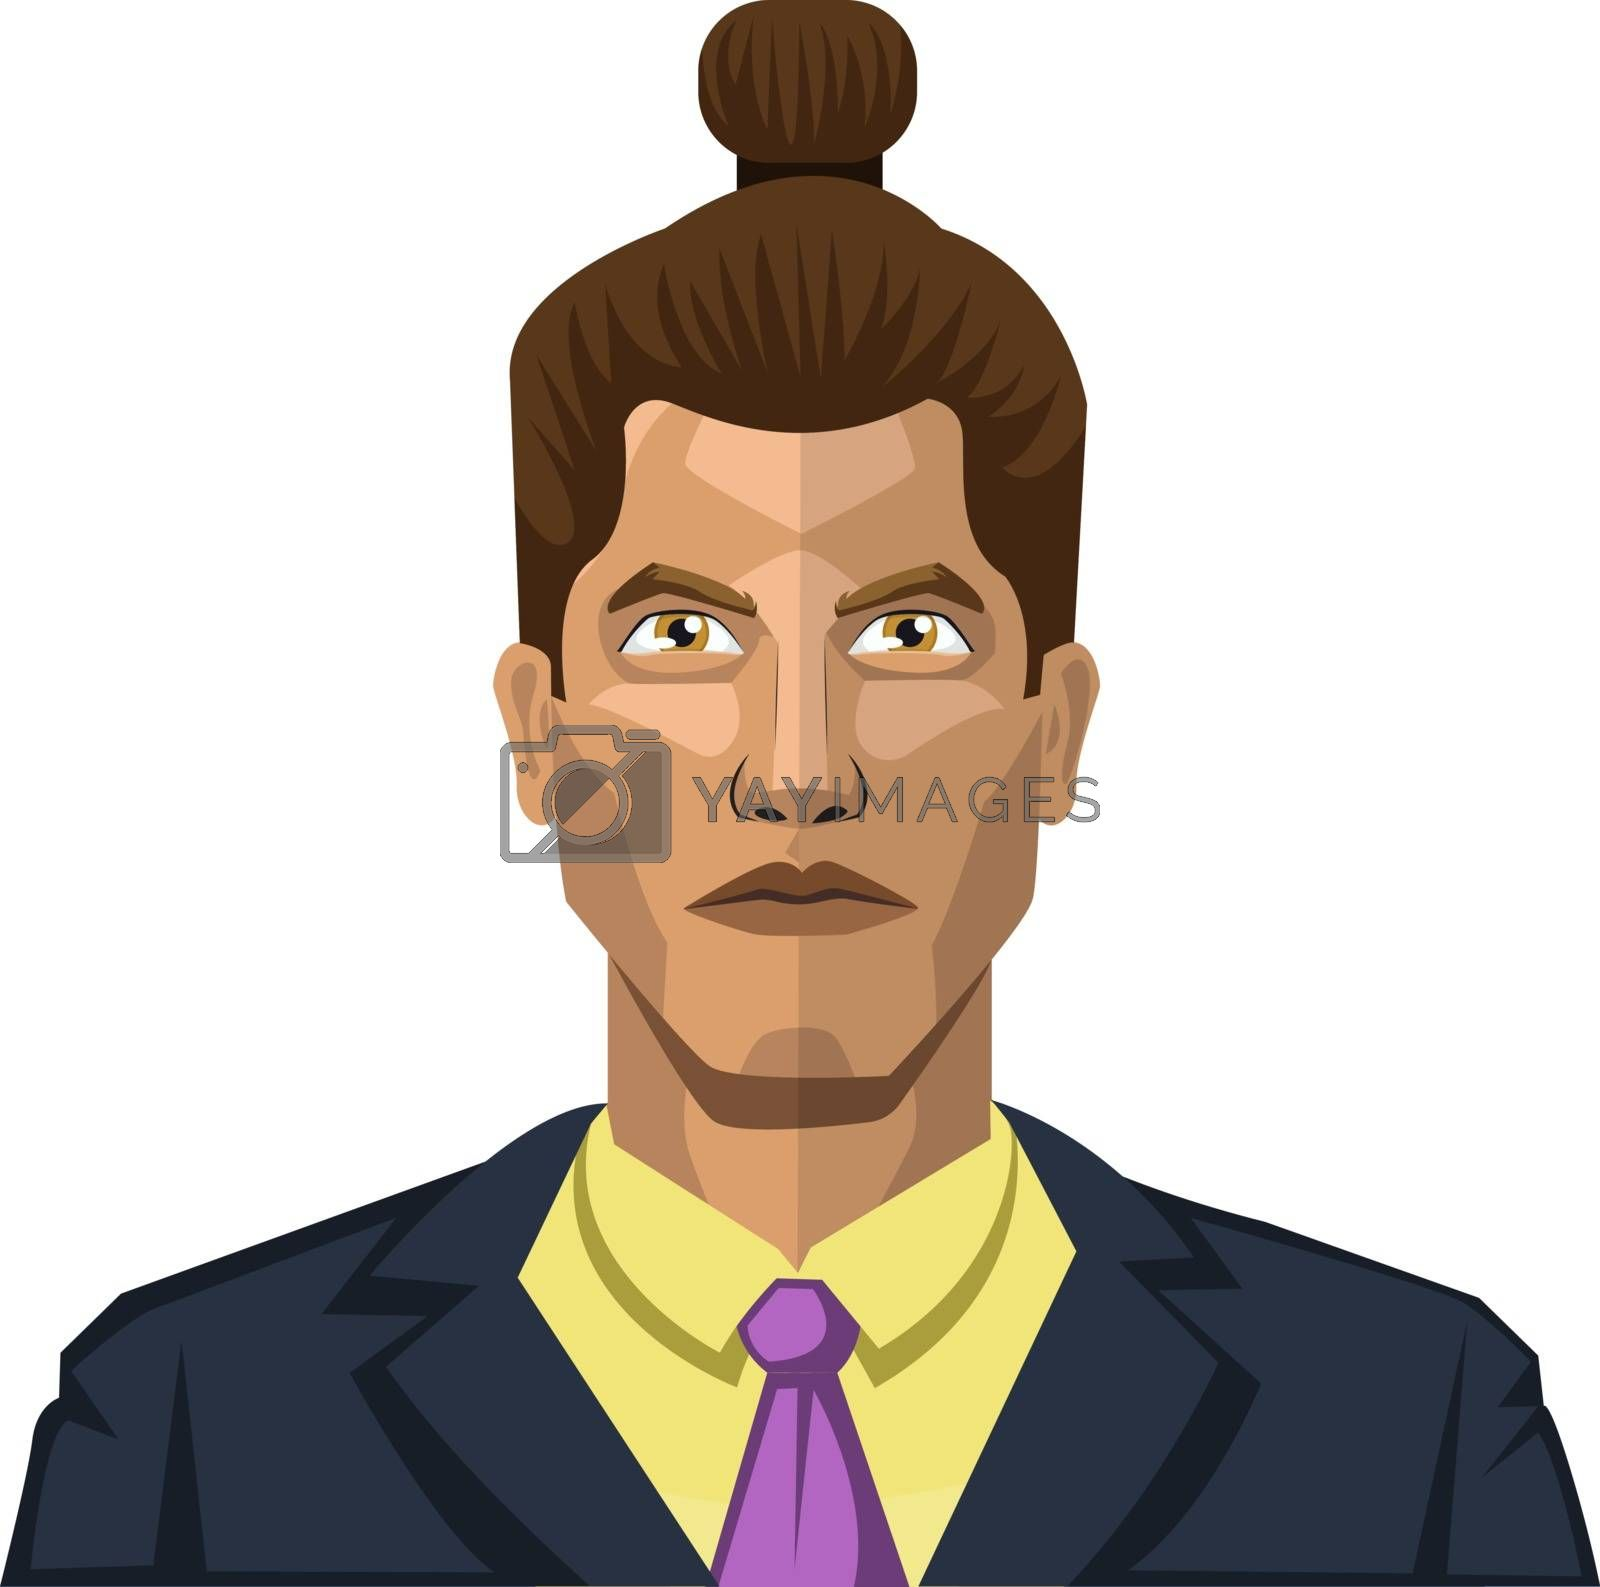 Royalty free image of Guy with a twisted hair illustration vector on white background by Morphart